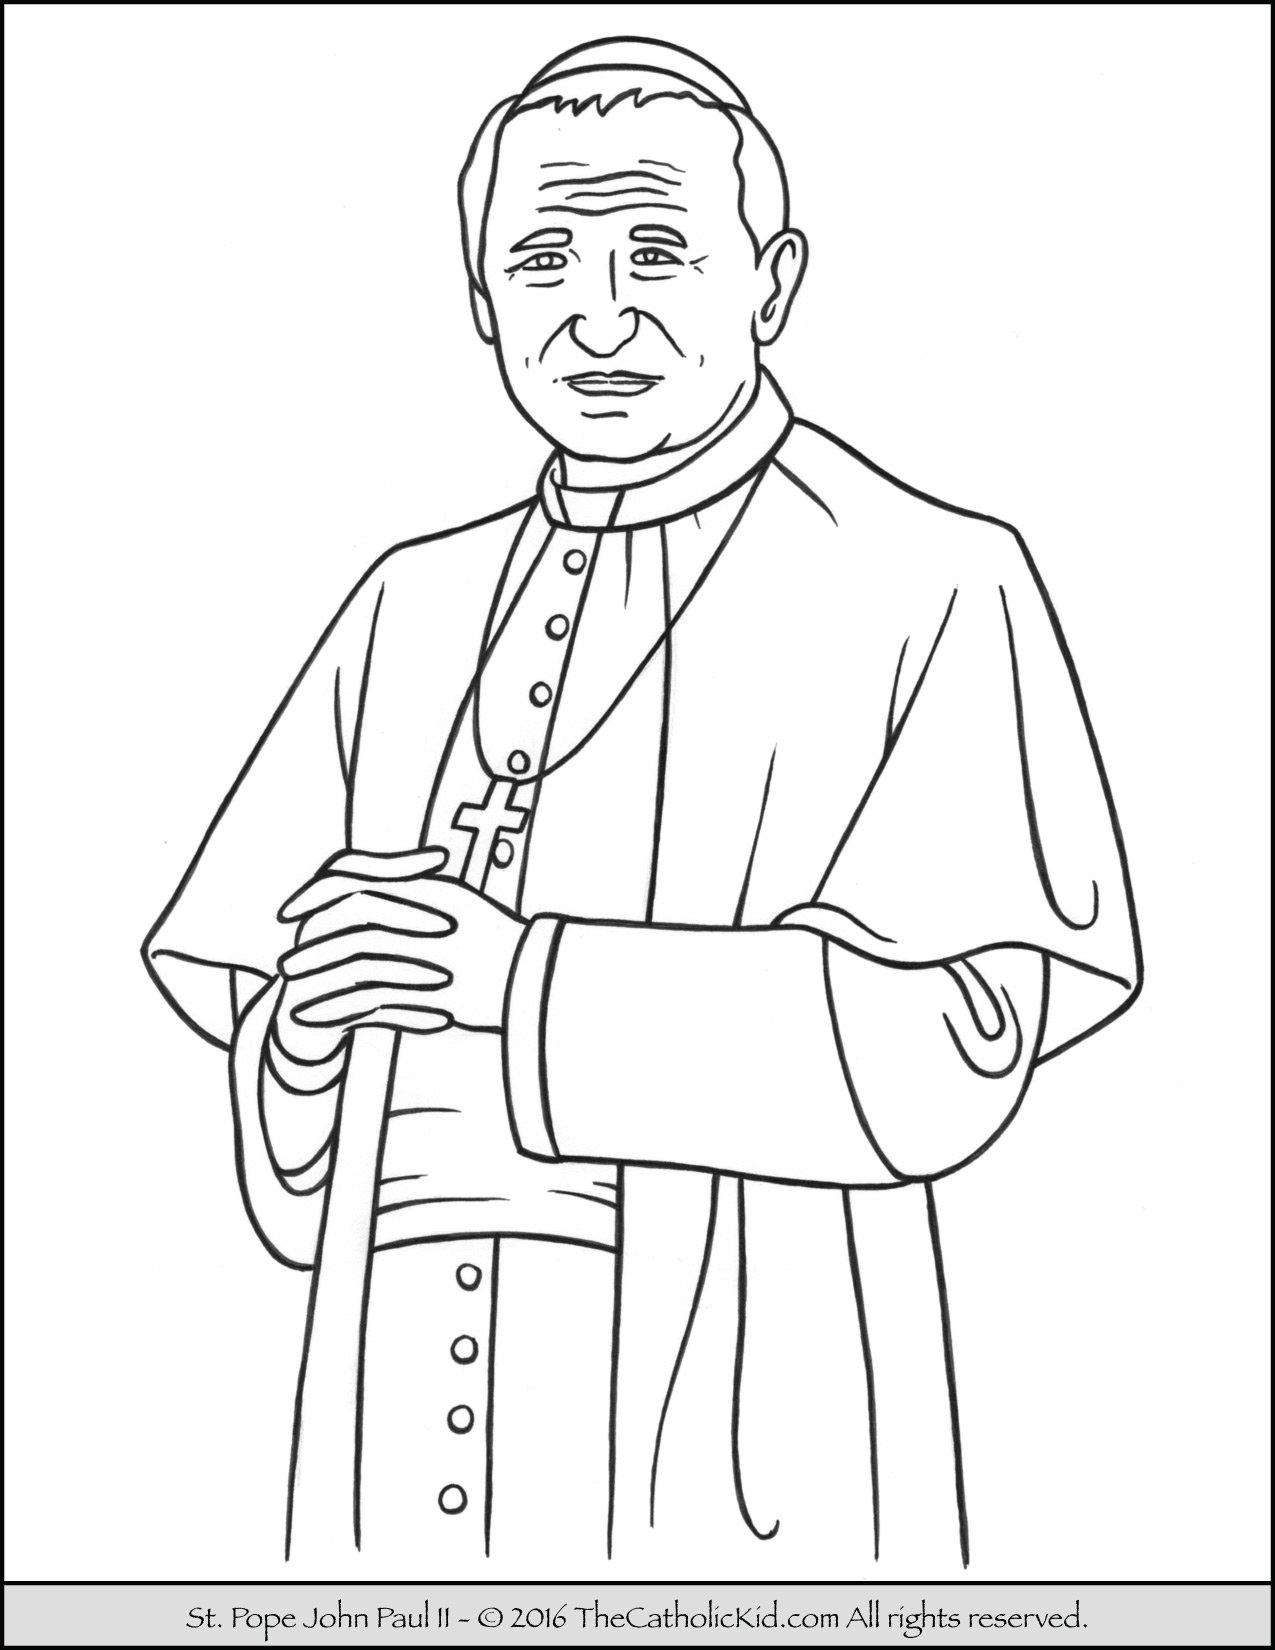 patron saint coloring pages - photo#14